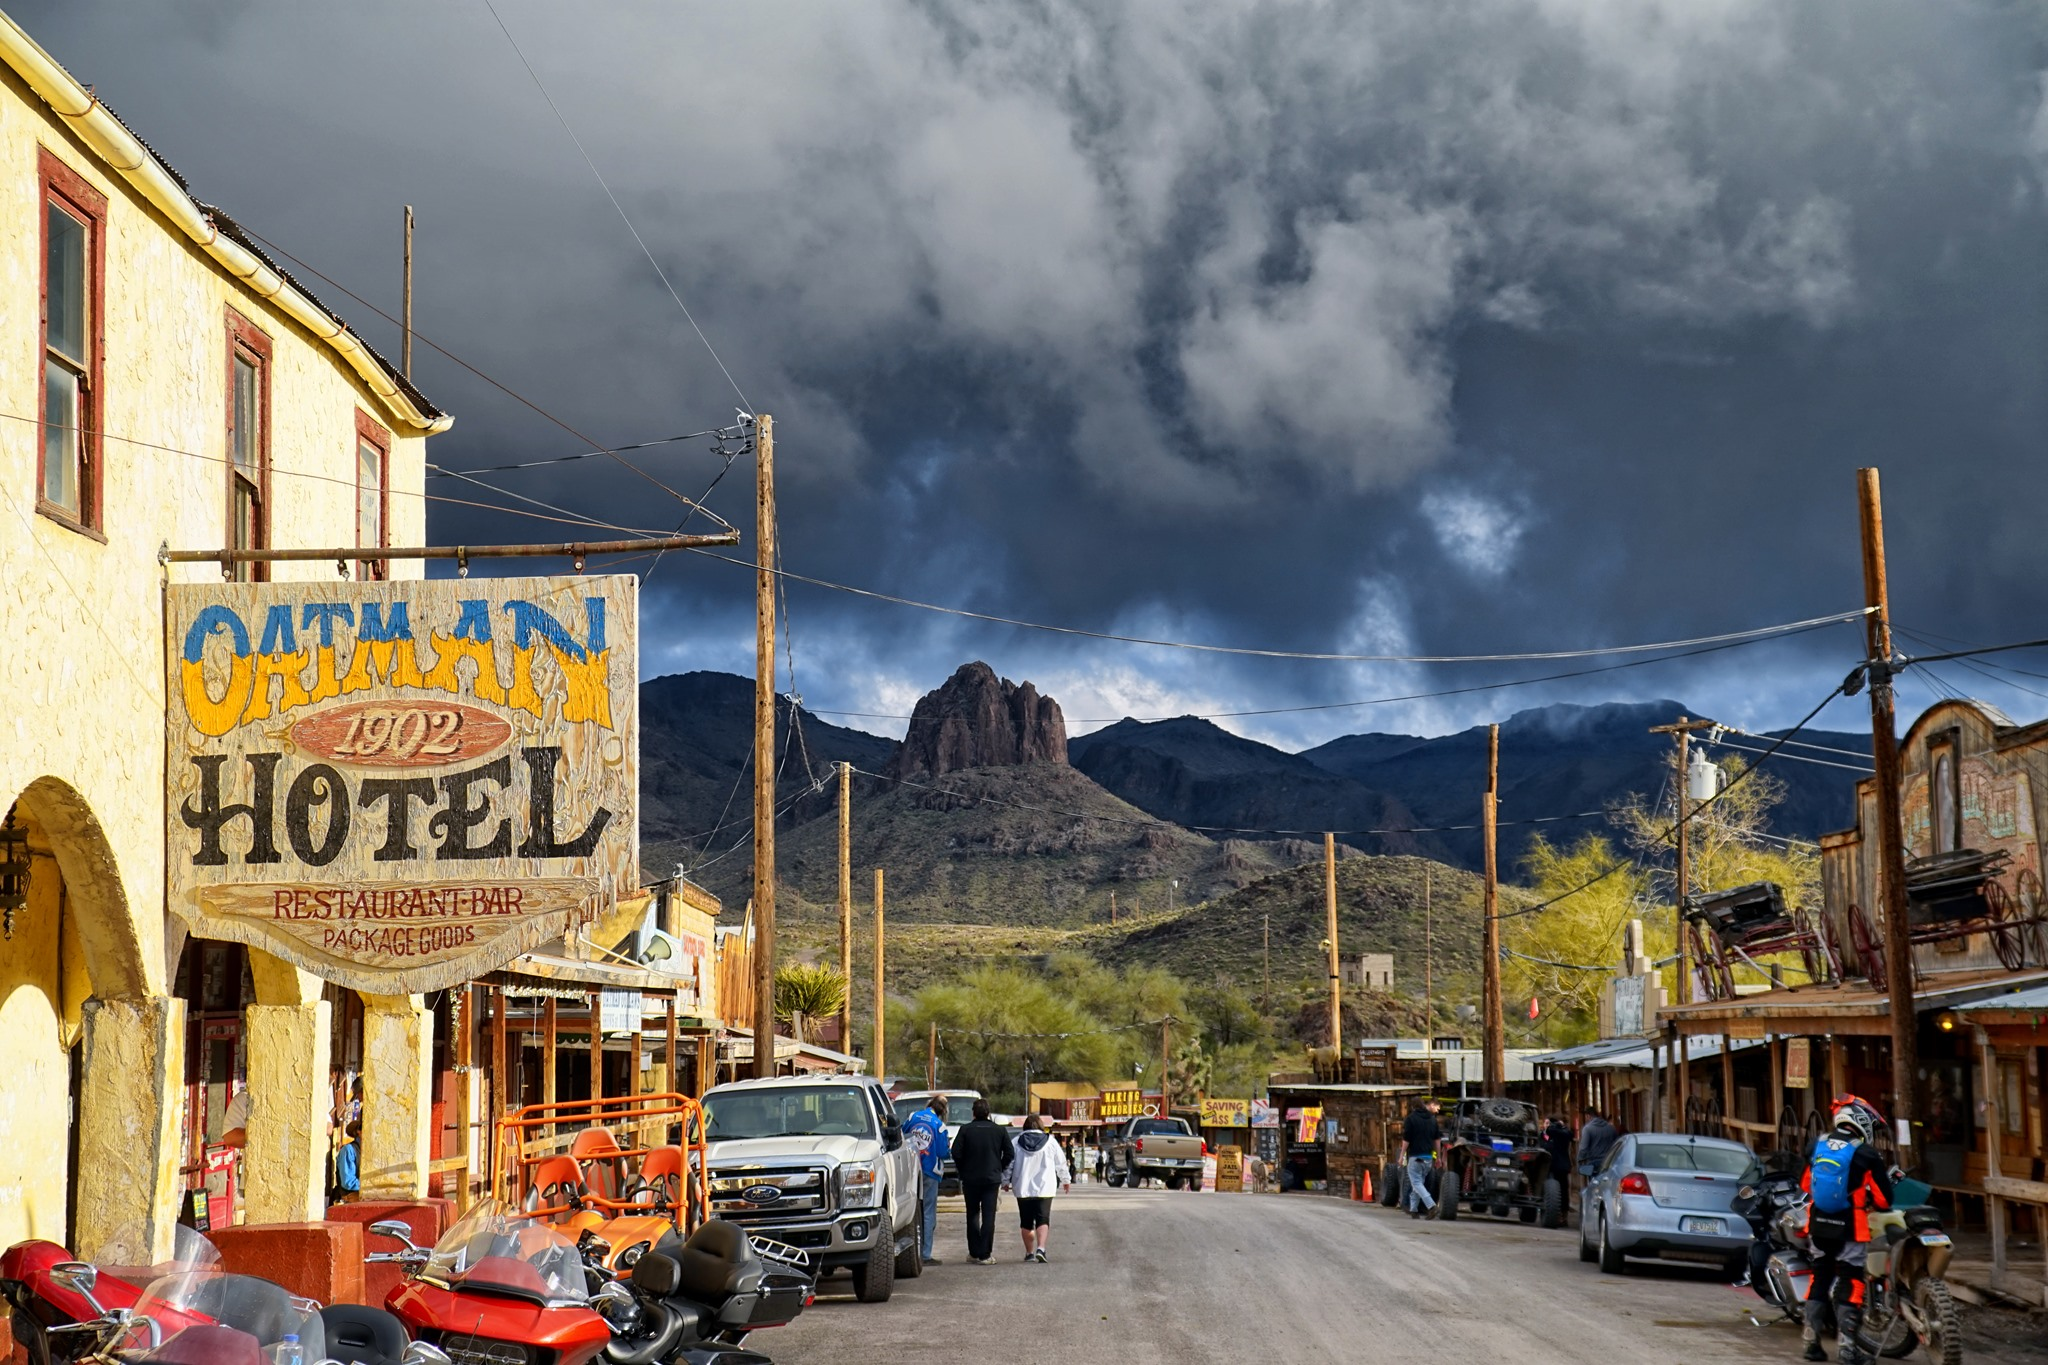 A storm is coming to downtown Oatman, Arizona